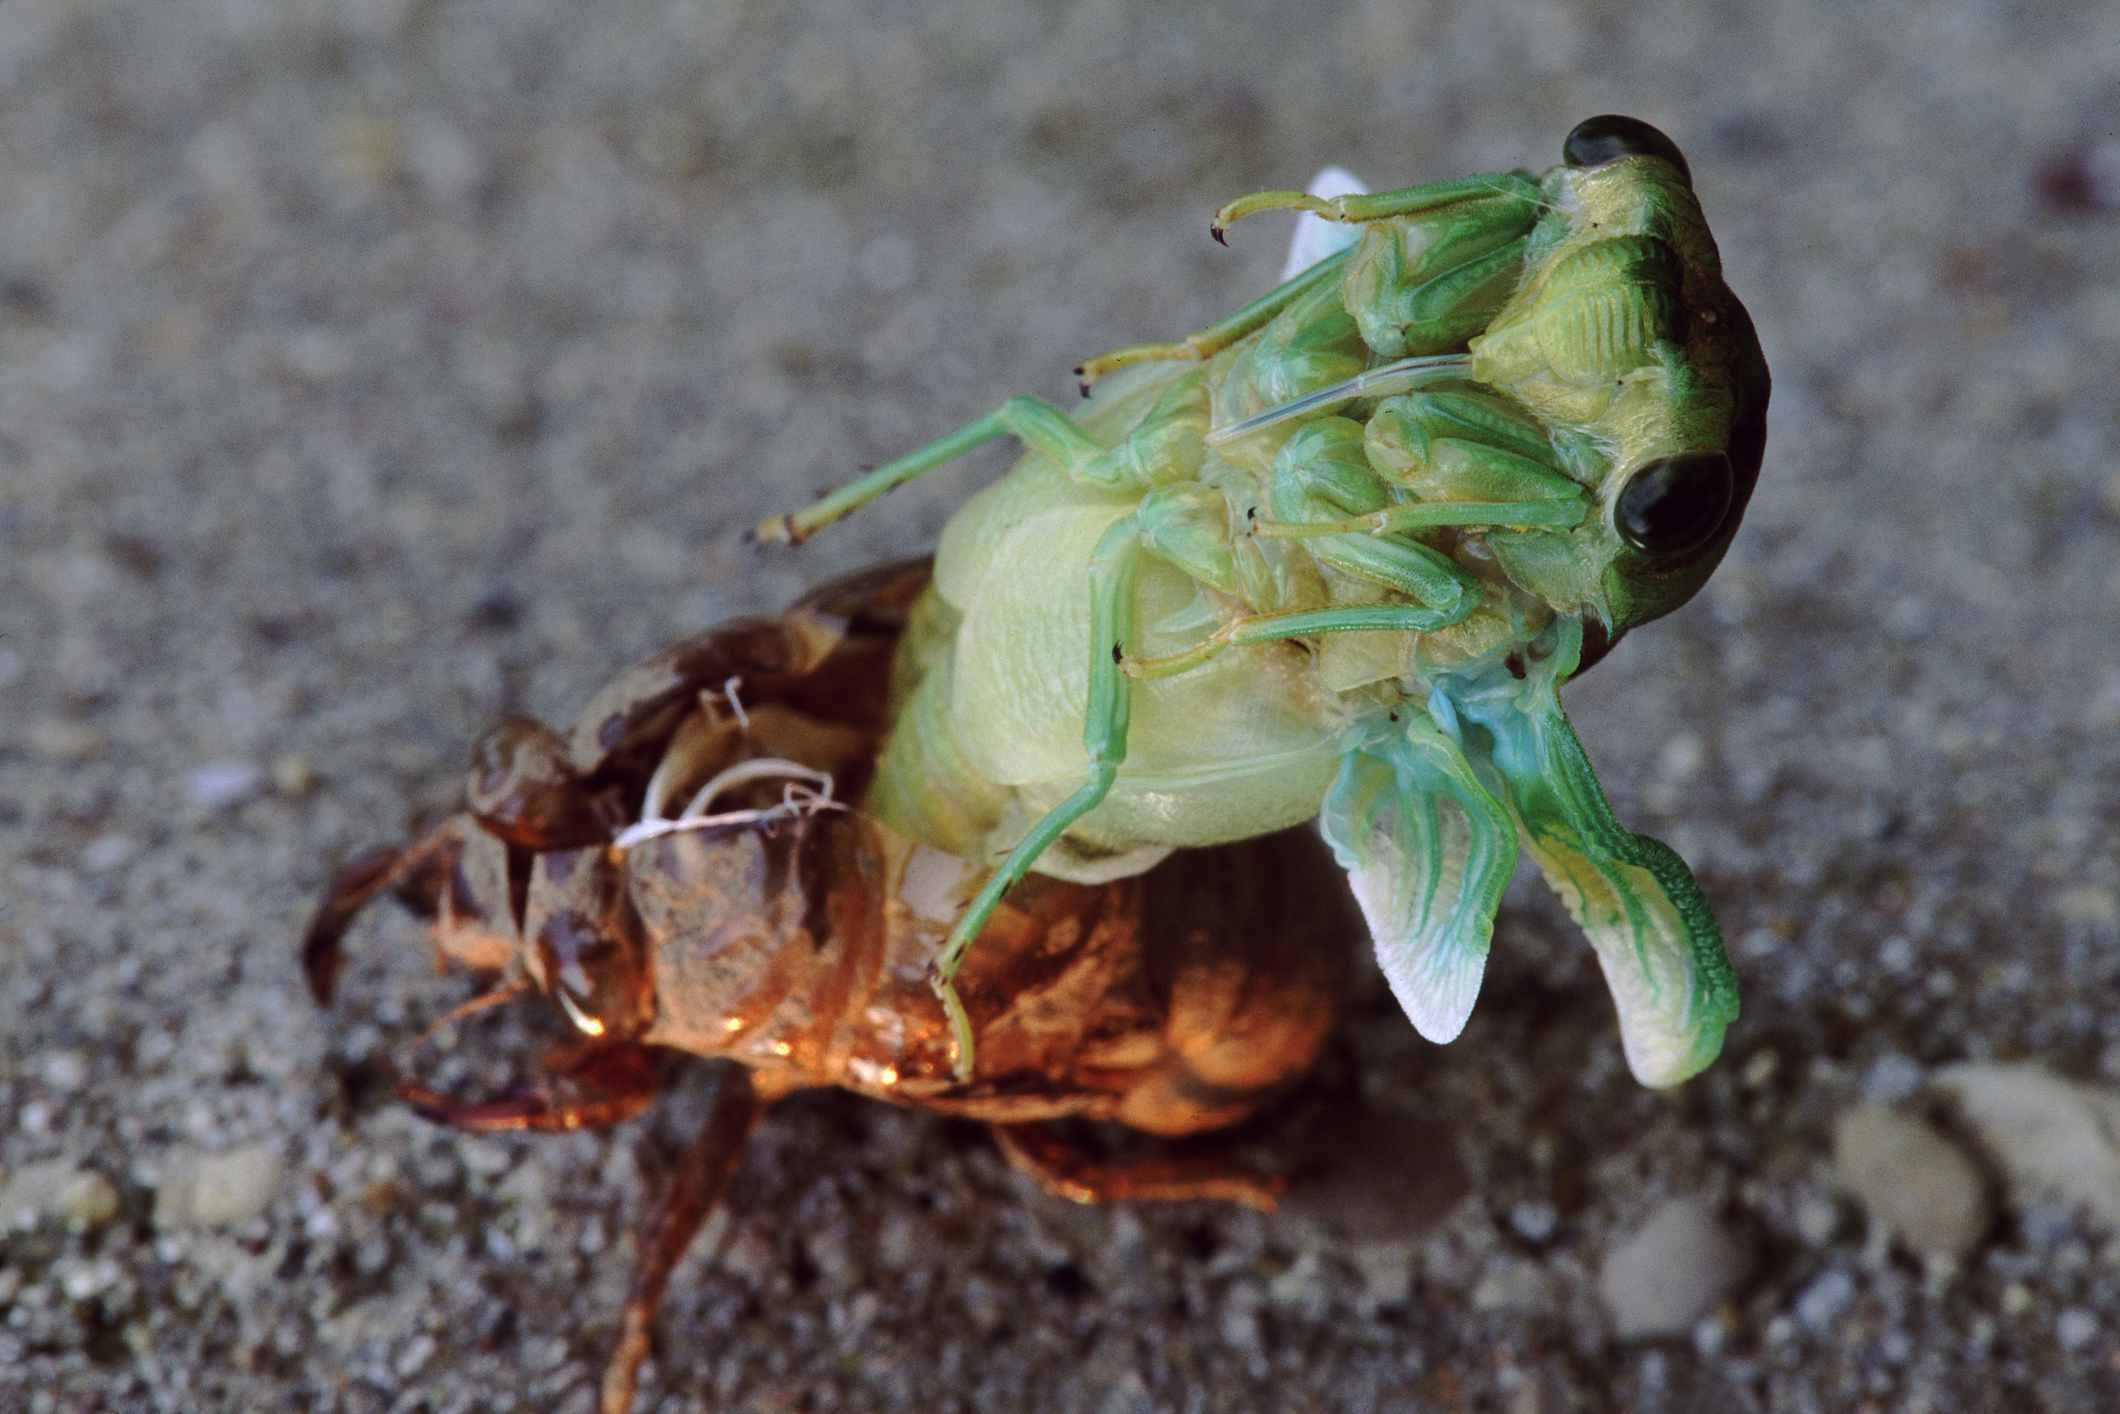 10 facts about arthropods